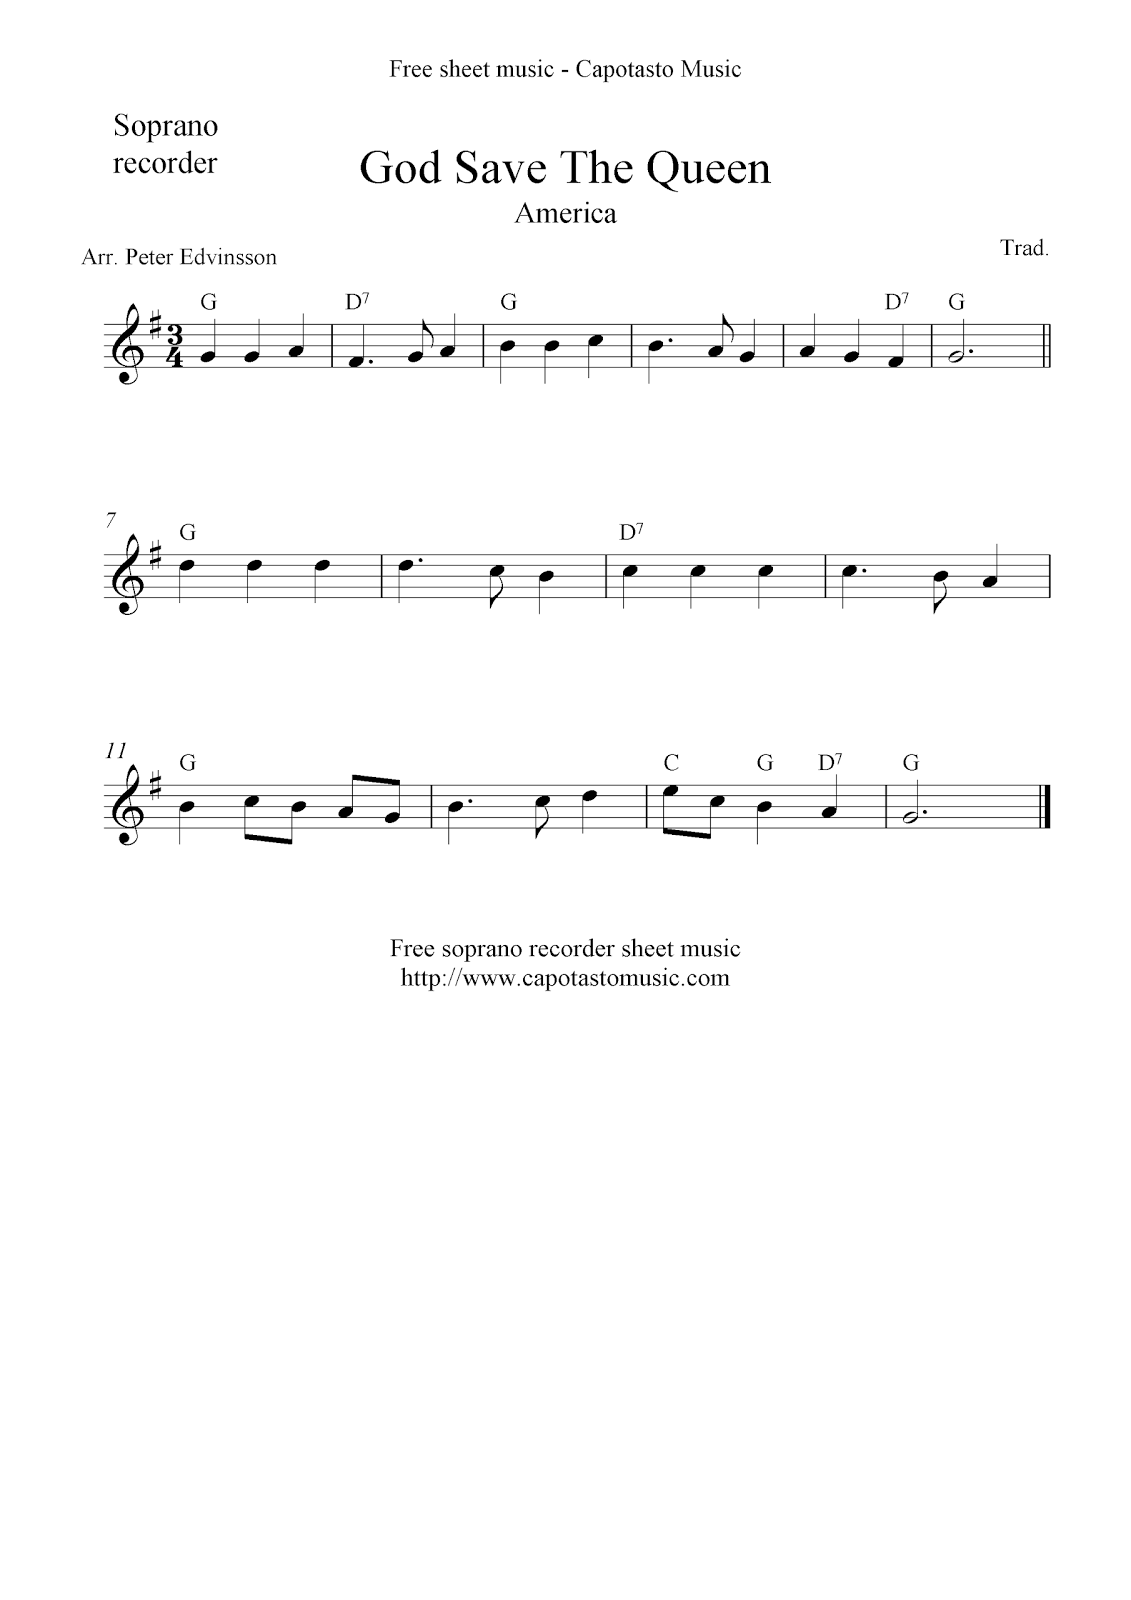 God save the queen america free soprano recorder sheet music notes